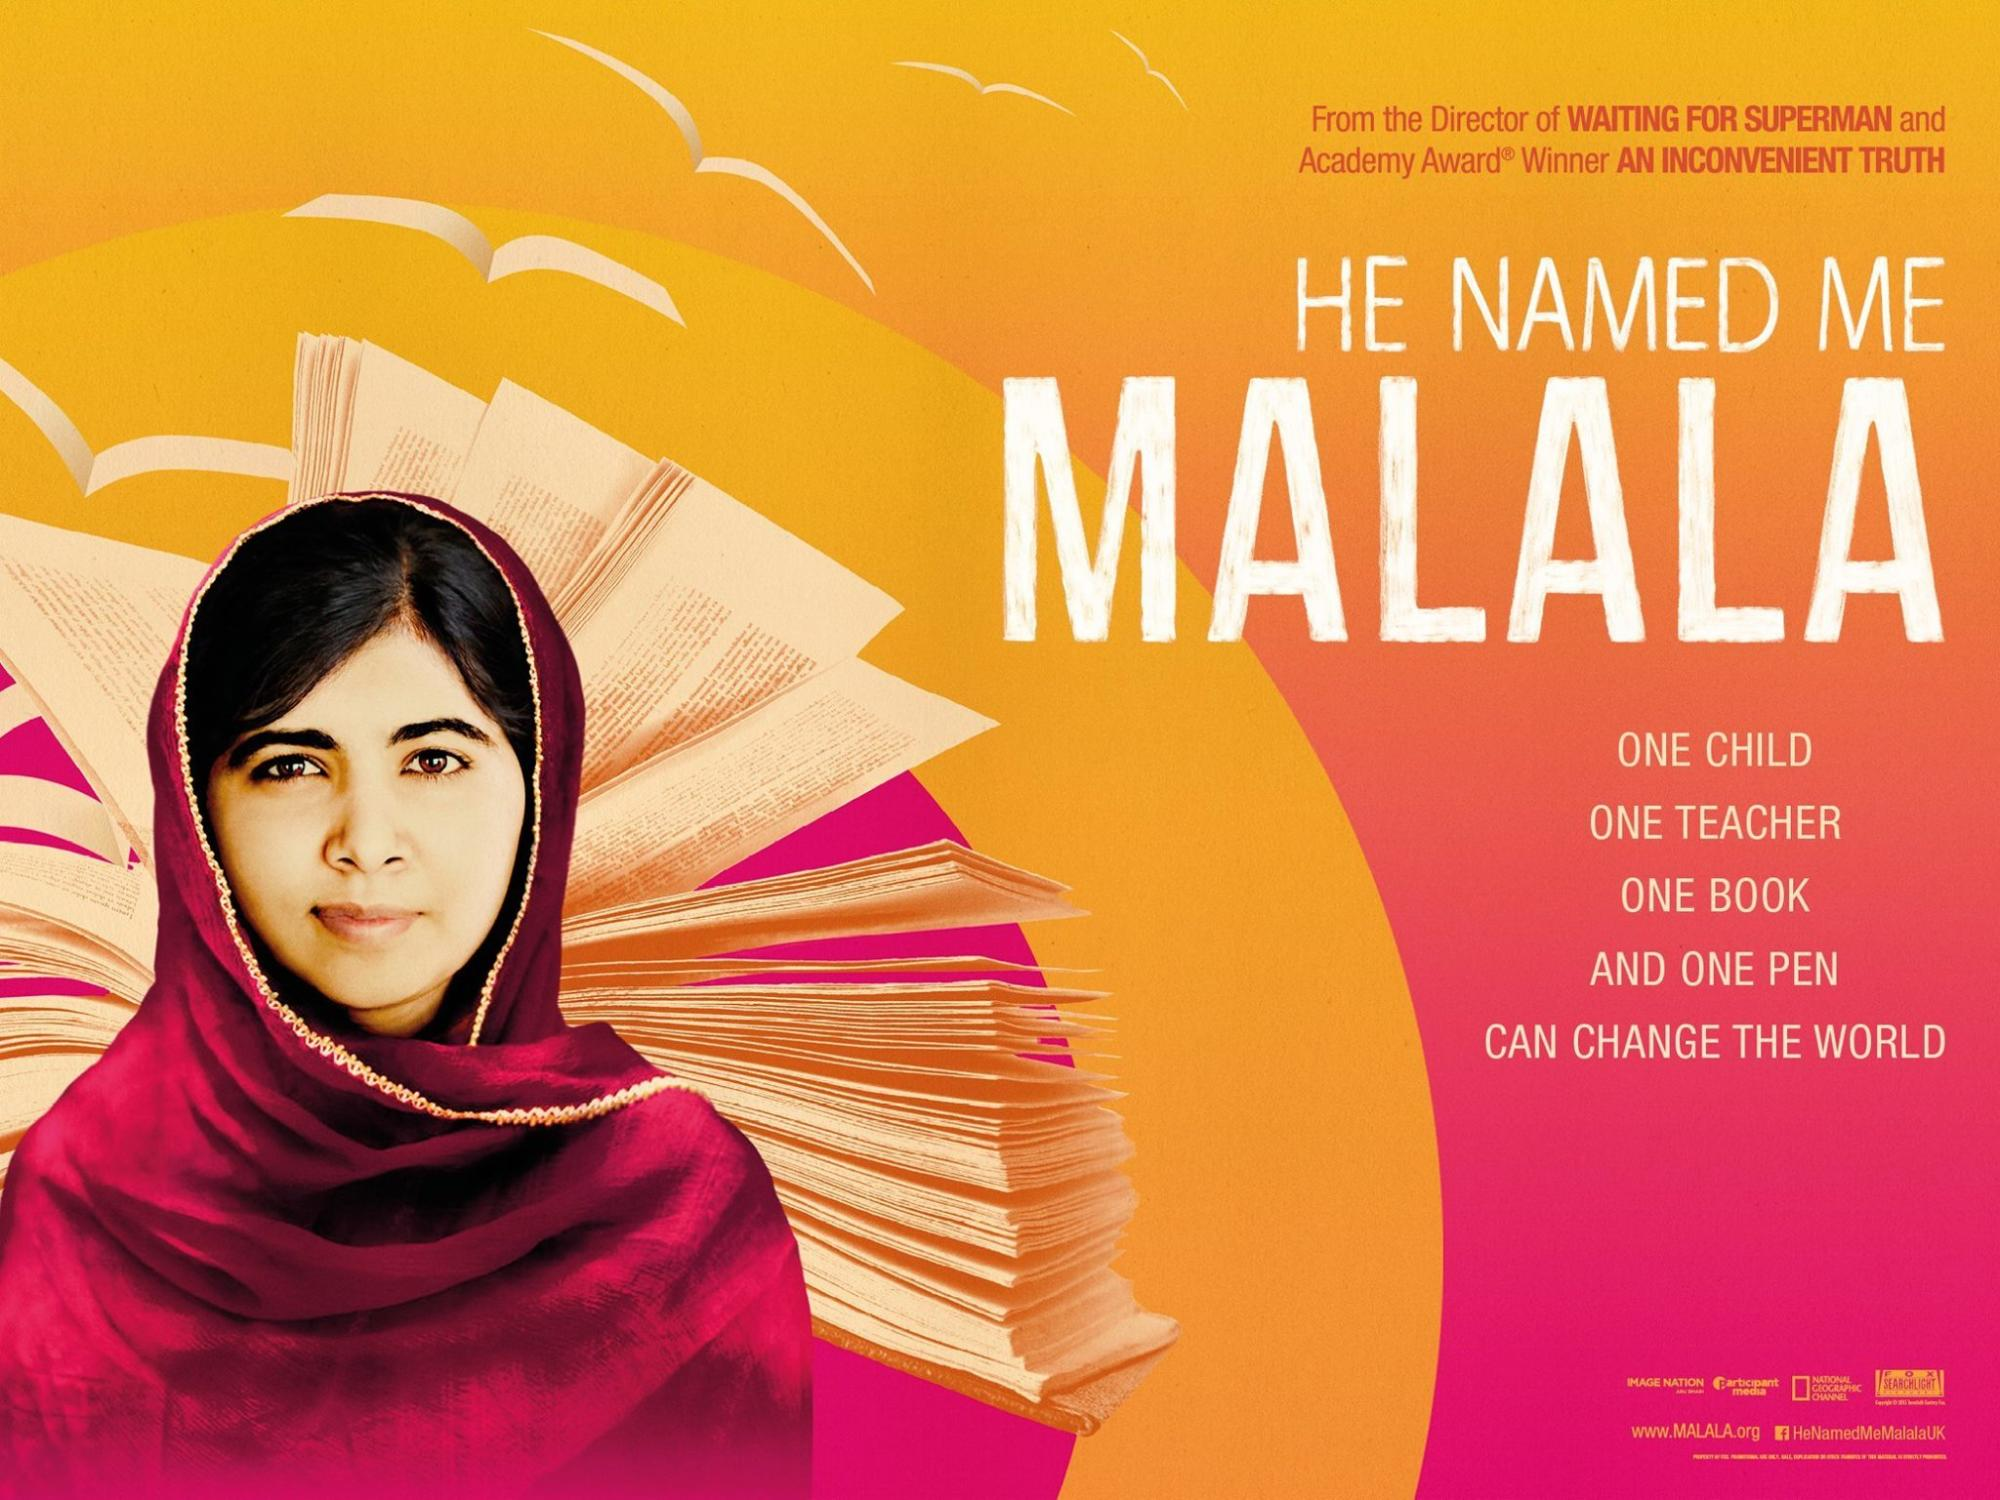 speak-up-malalas-message-to-girls-at-her-film-premiere-body-image-1443287799